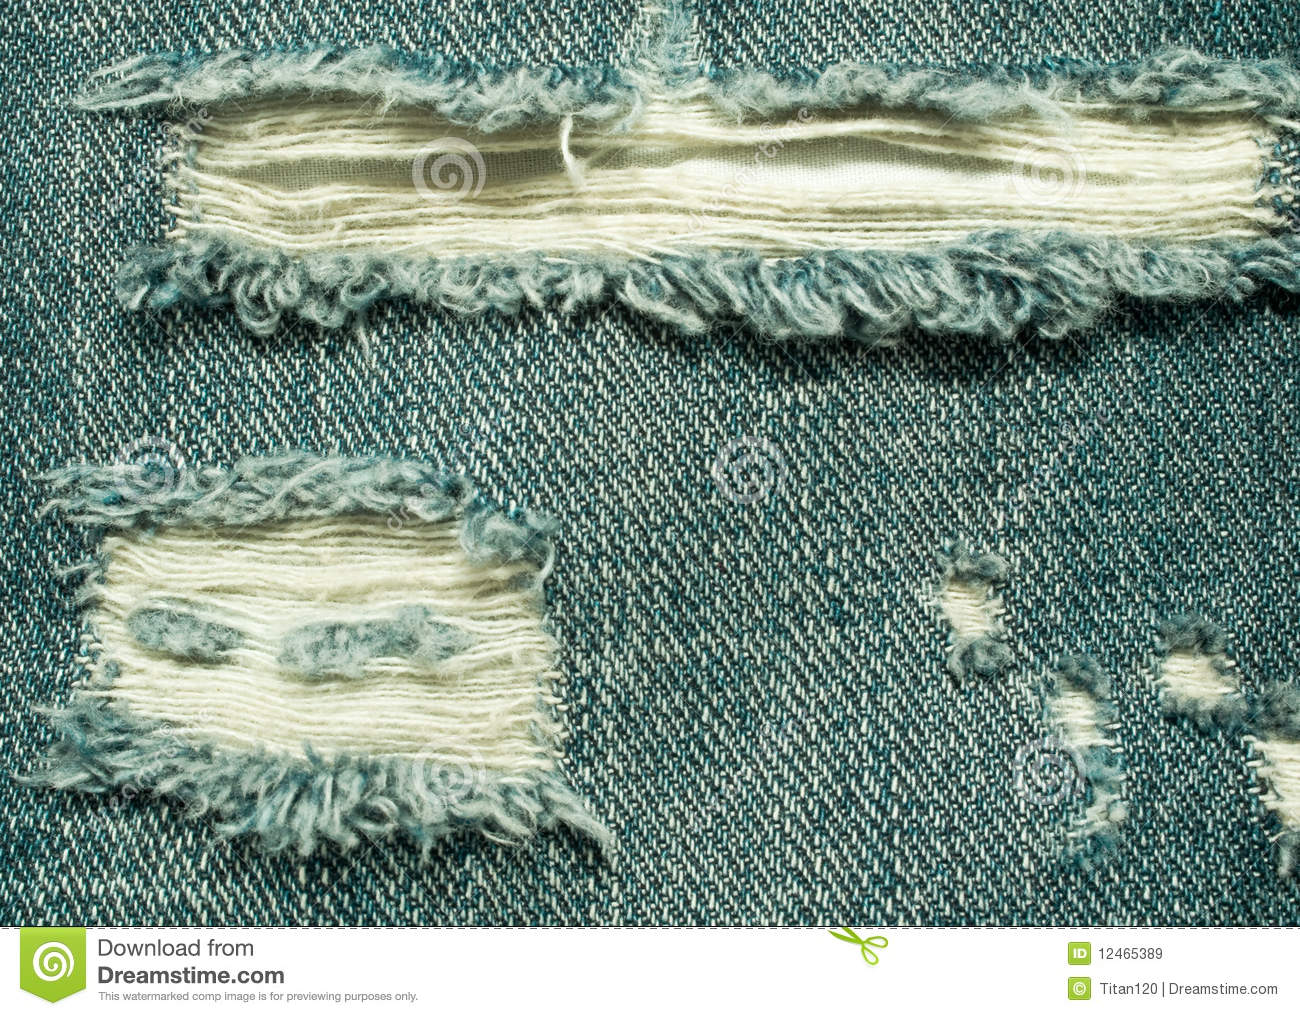 https://thumbs.dreamstime.com/z/background-ripped-jeans-12465389.jpg